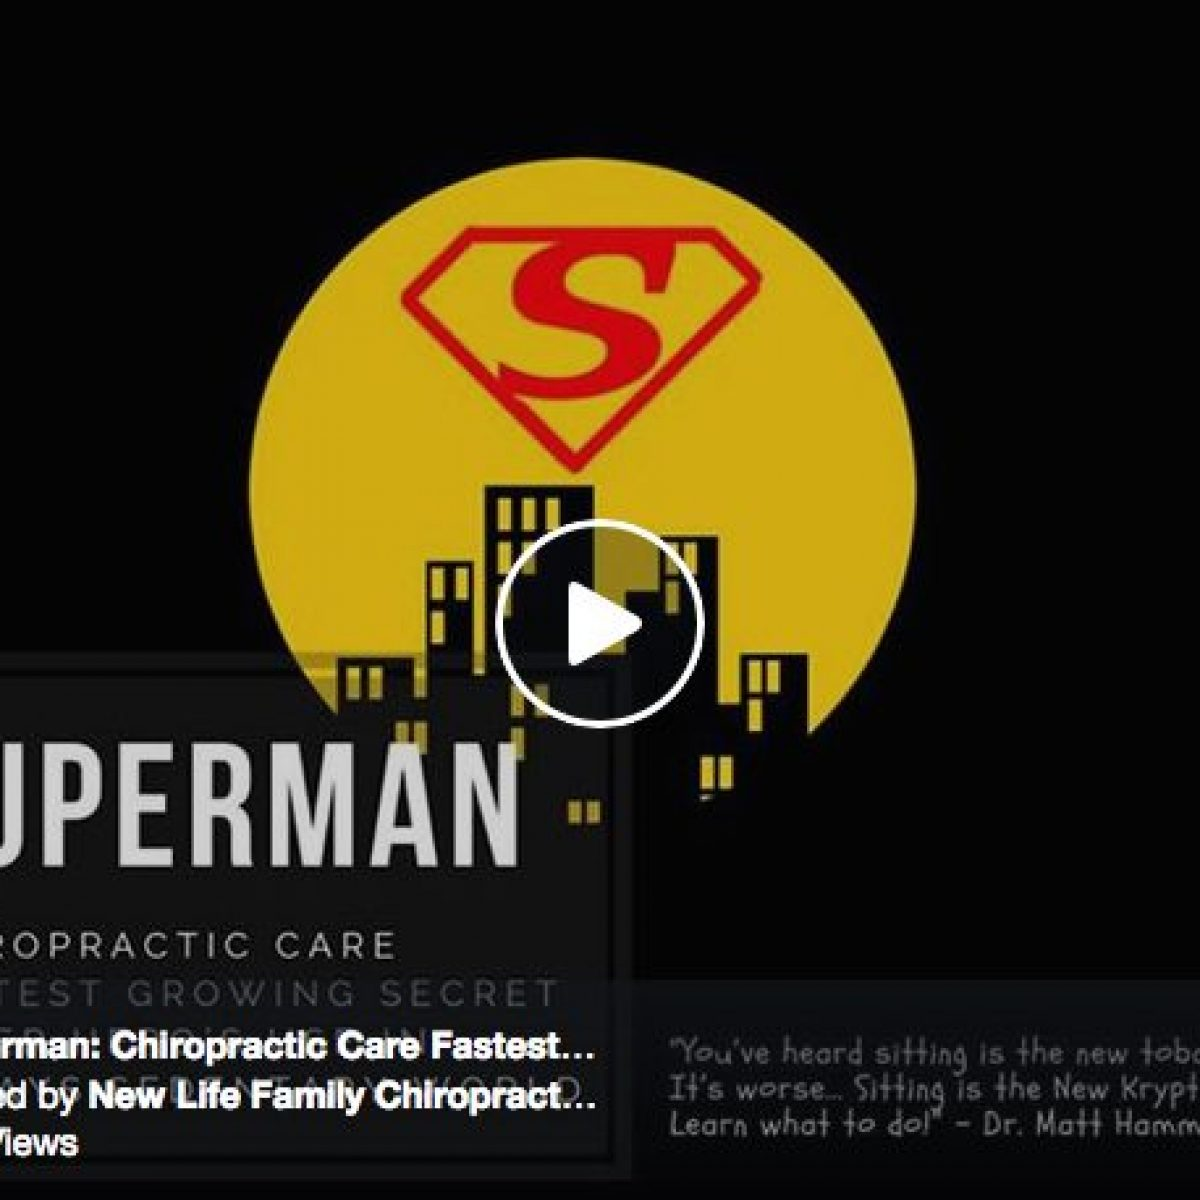 Superman: Chiropractic Care Fastest Growing Secret Super Heroes Use!